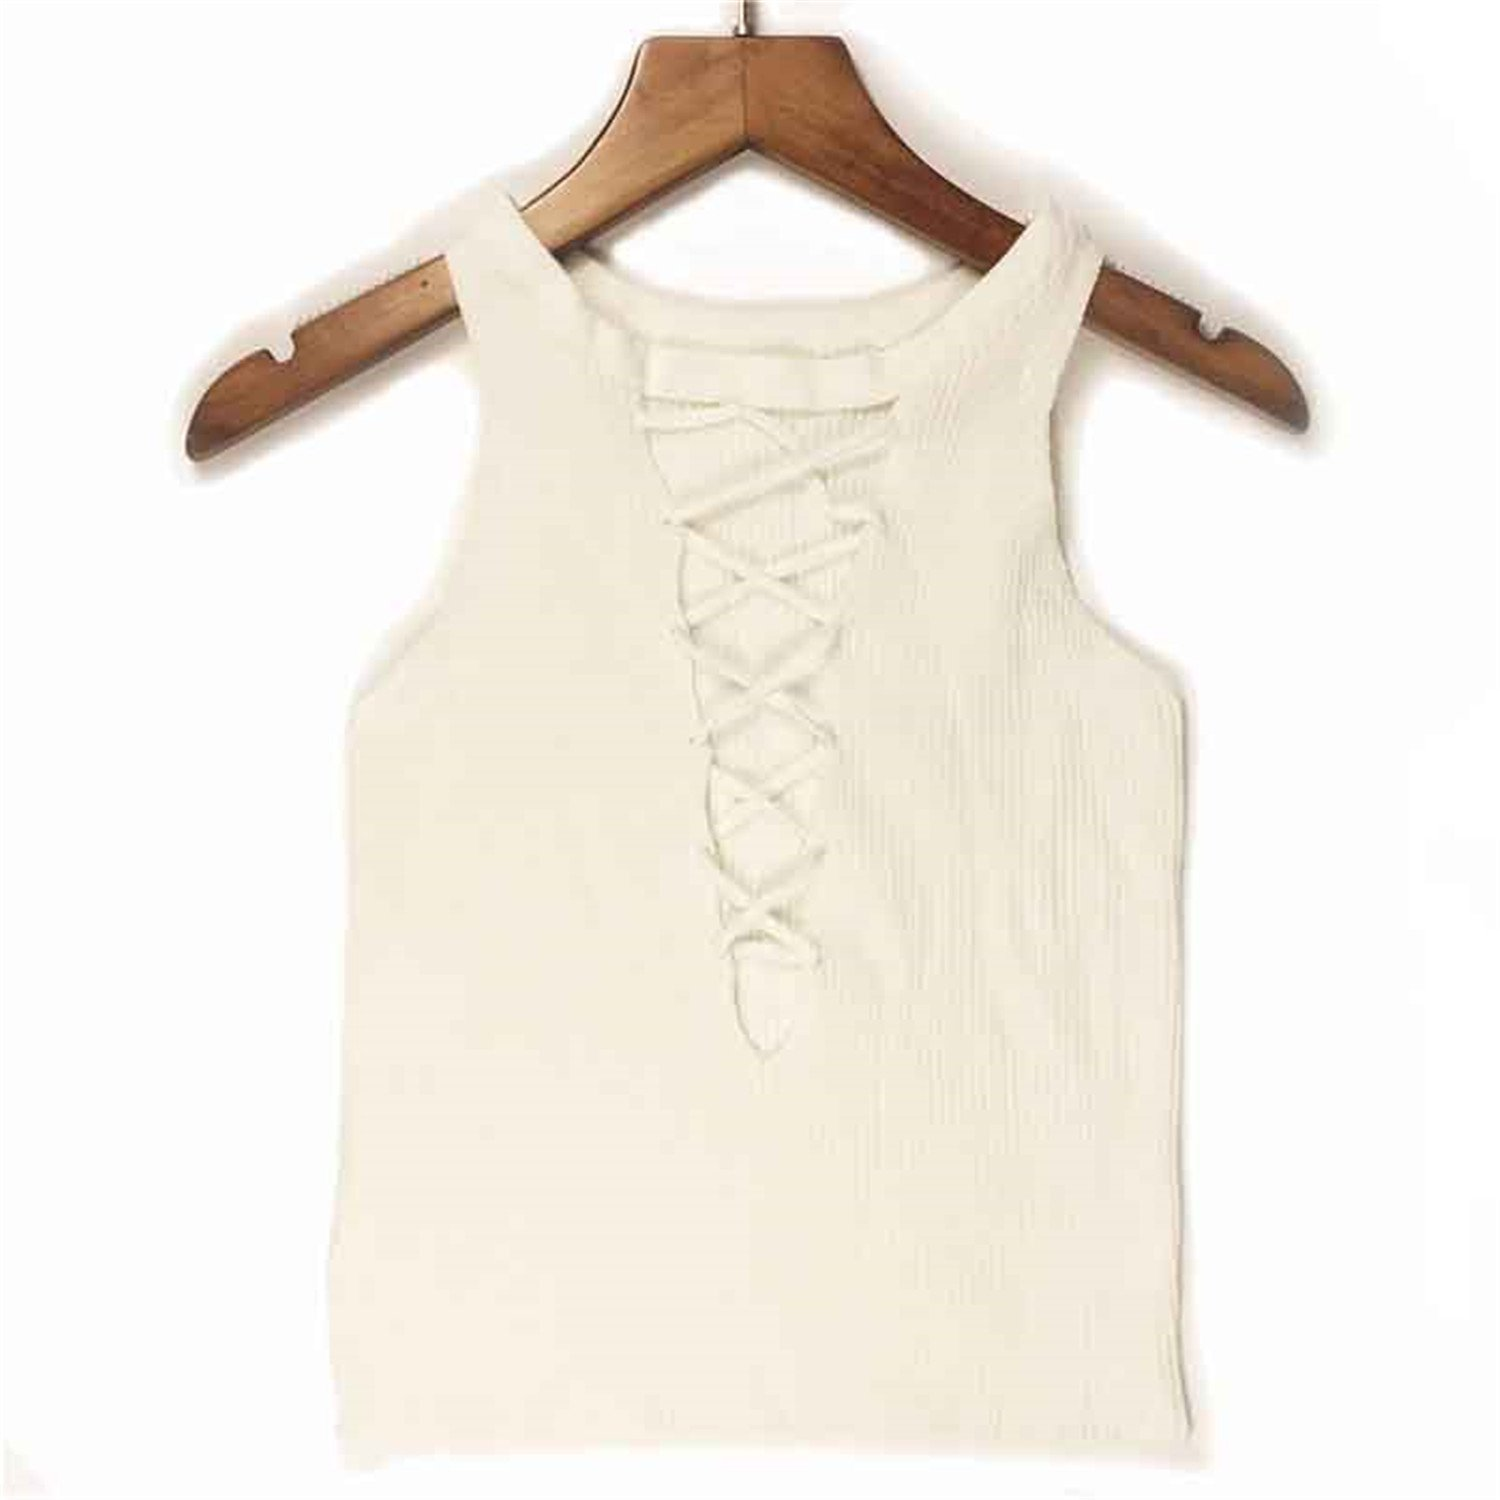 Amazon.com: Willie Marlow Elasticity Knitted Crop Tops Womens Club Tank Top Wear On Two Sides Short Camis O-Neck V-Line Bandage Tops 01 One Size: Clothing